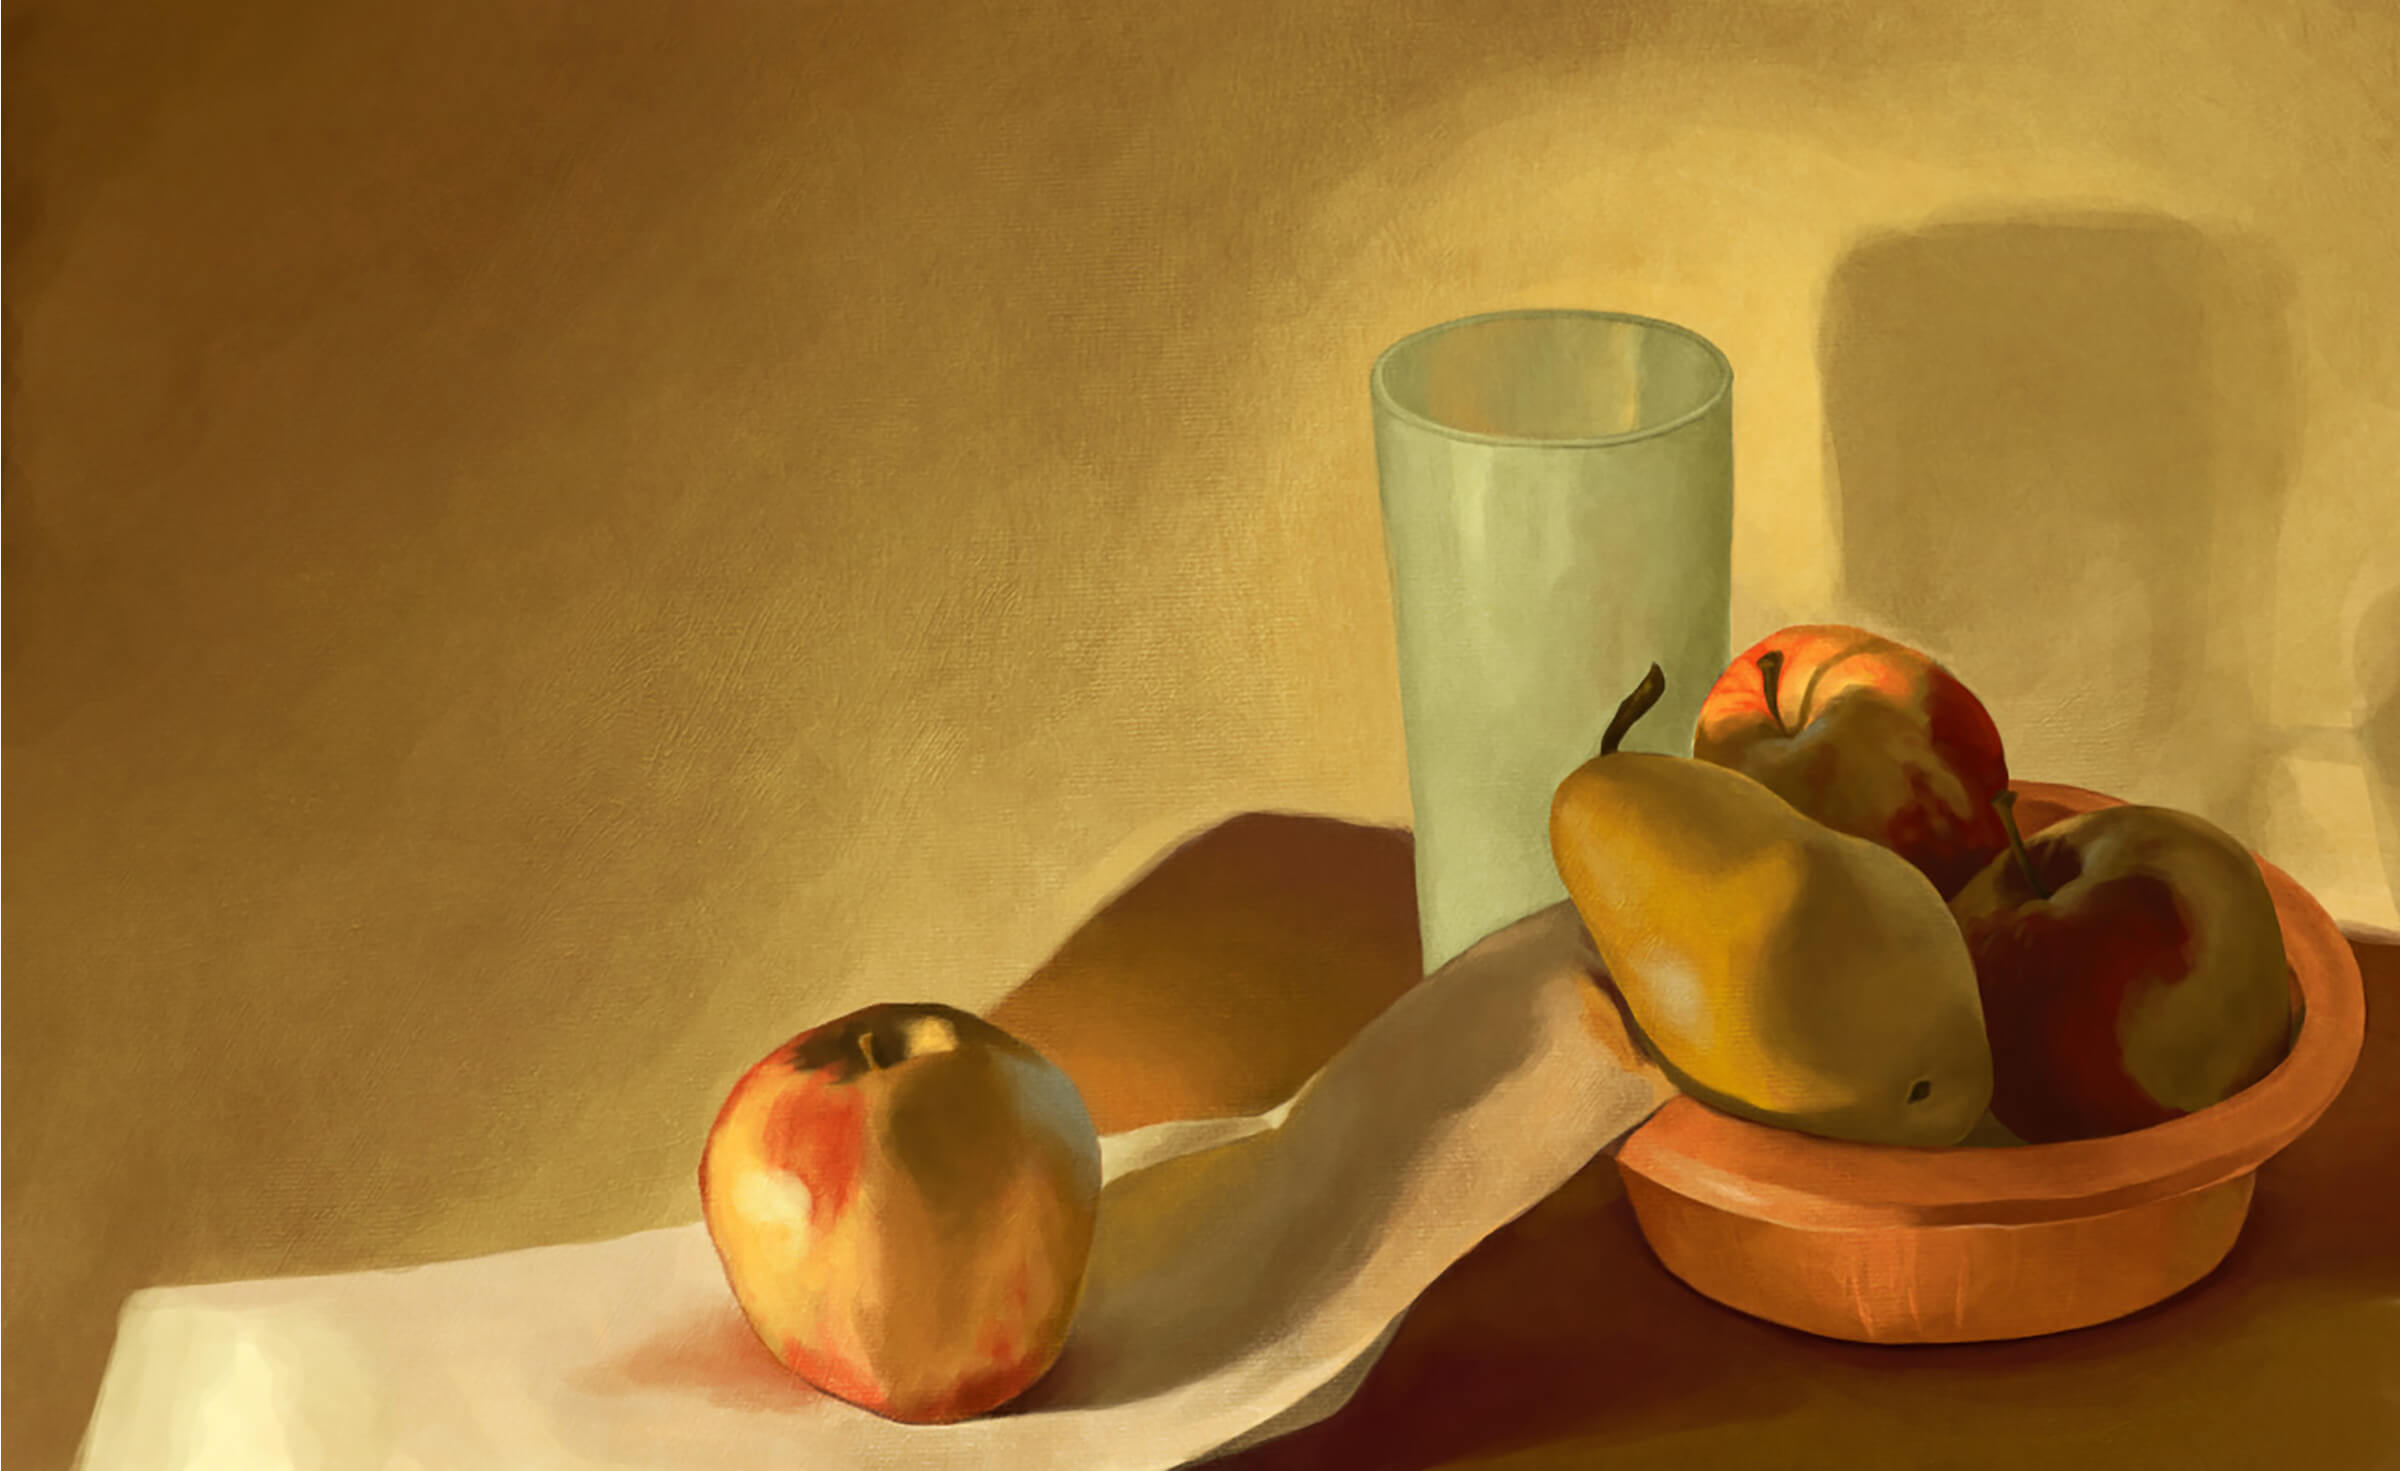 still-life traditional painting of bowl with apples and a pear, a glass, and another apple on a draped white napkin